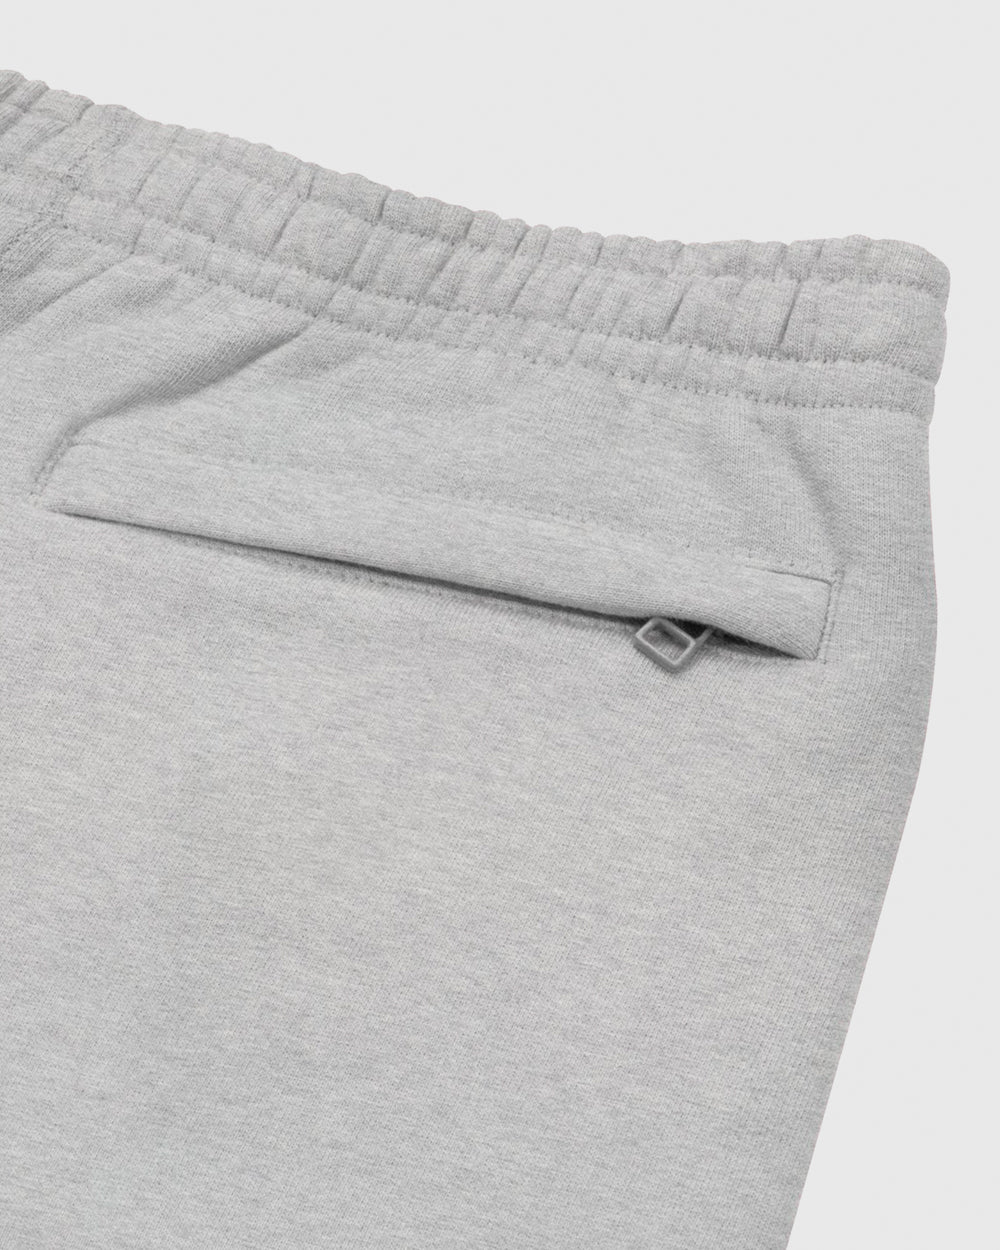 OVO COLLEGIATE SWEATPANT - HEATHER GREY